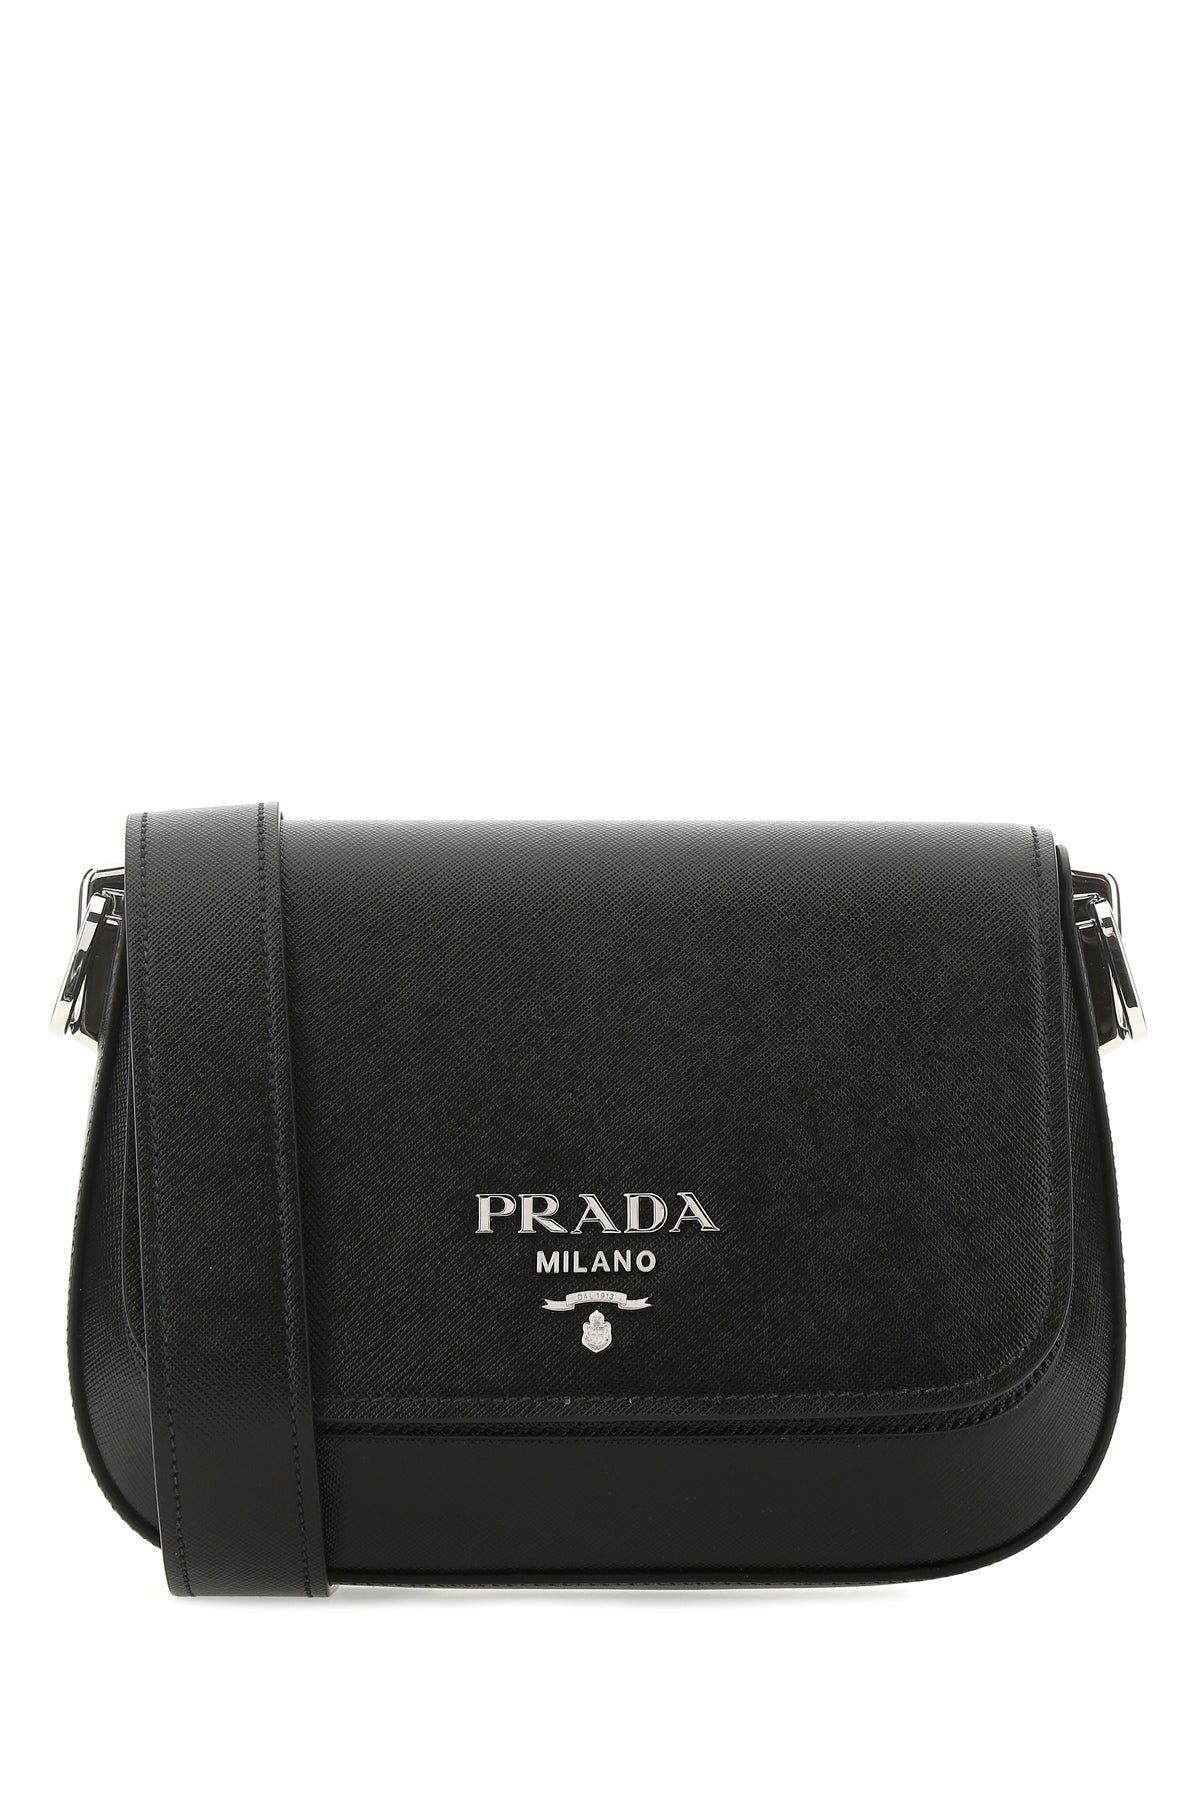 Prada PRADA LOGO SAFFIANO SHOULDER BAG